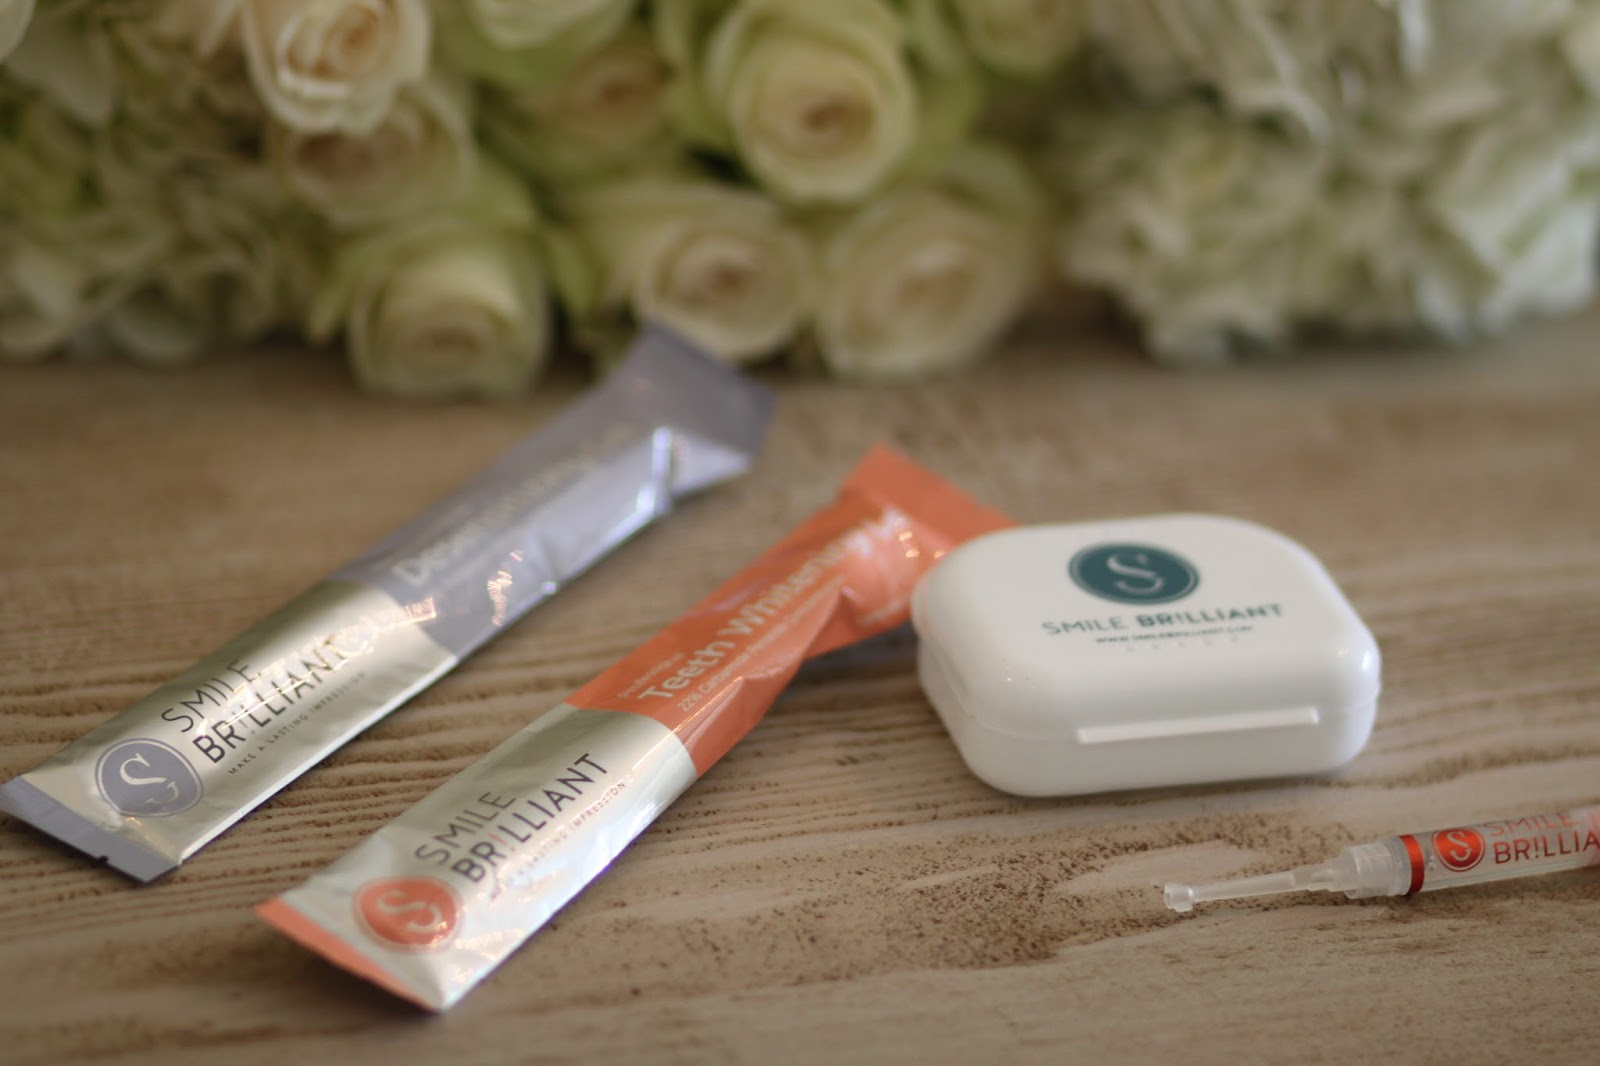 smile brilliant at home whitening